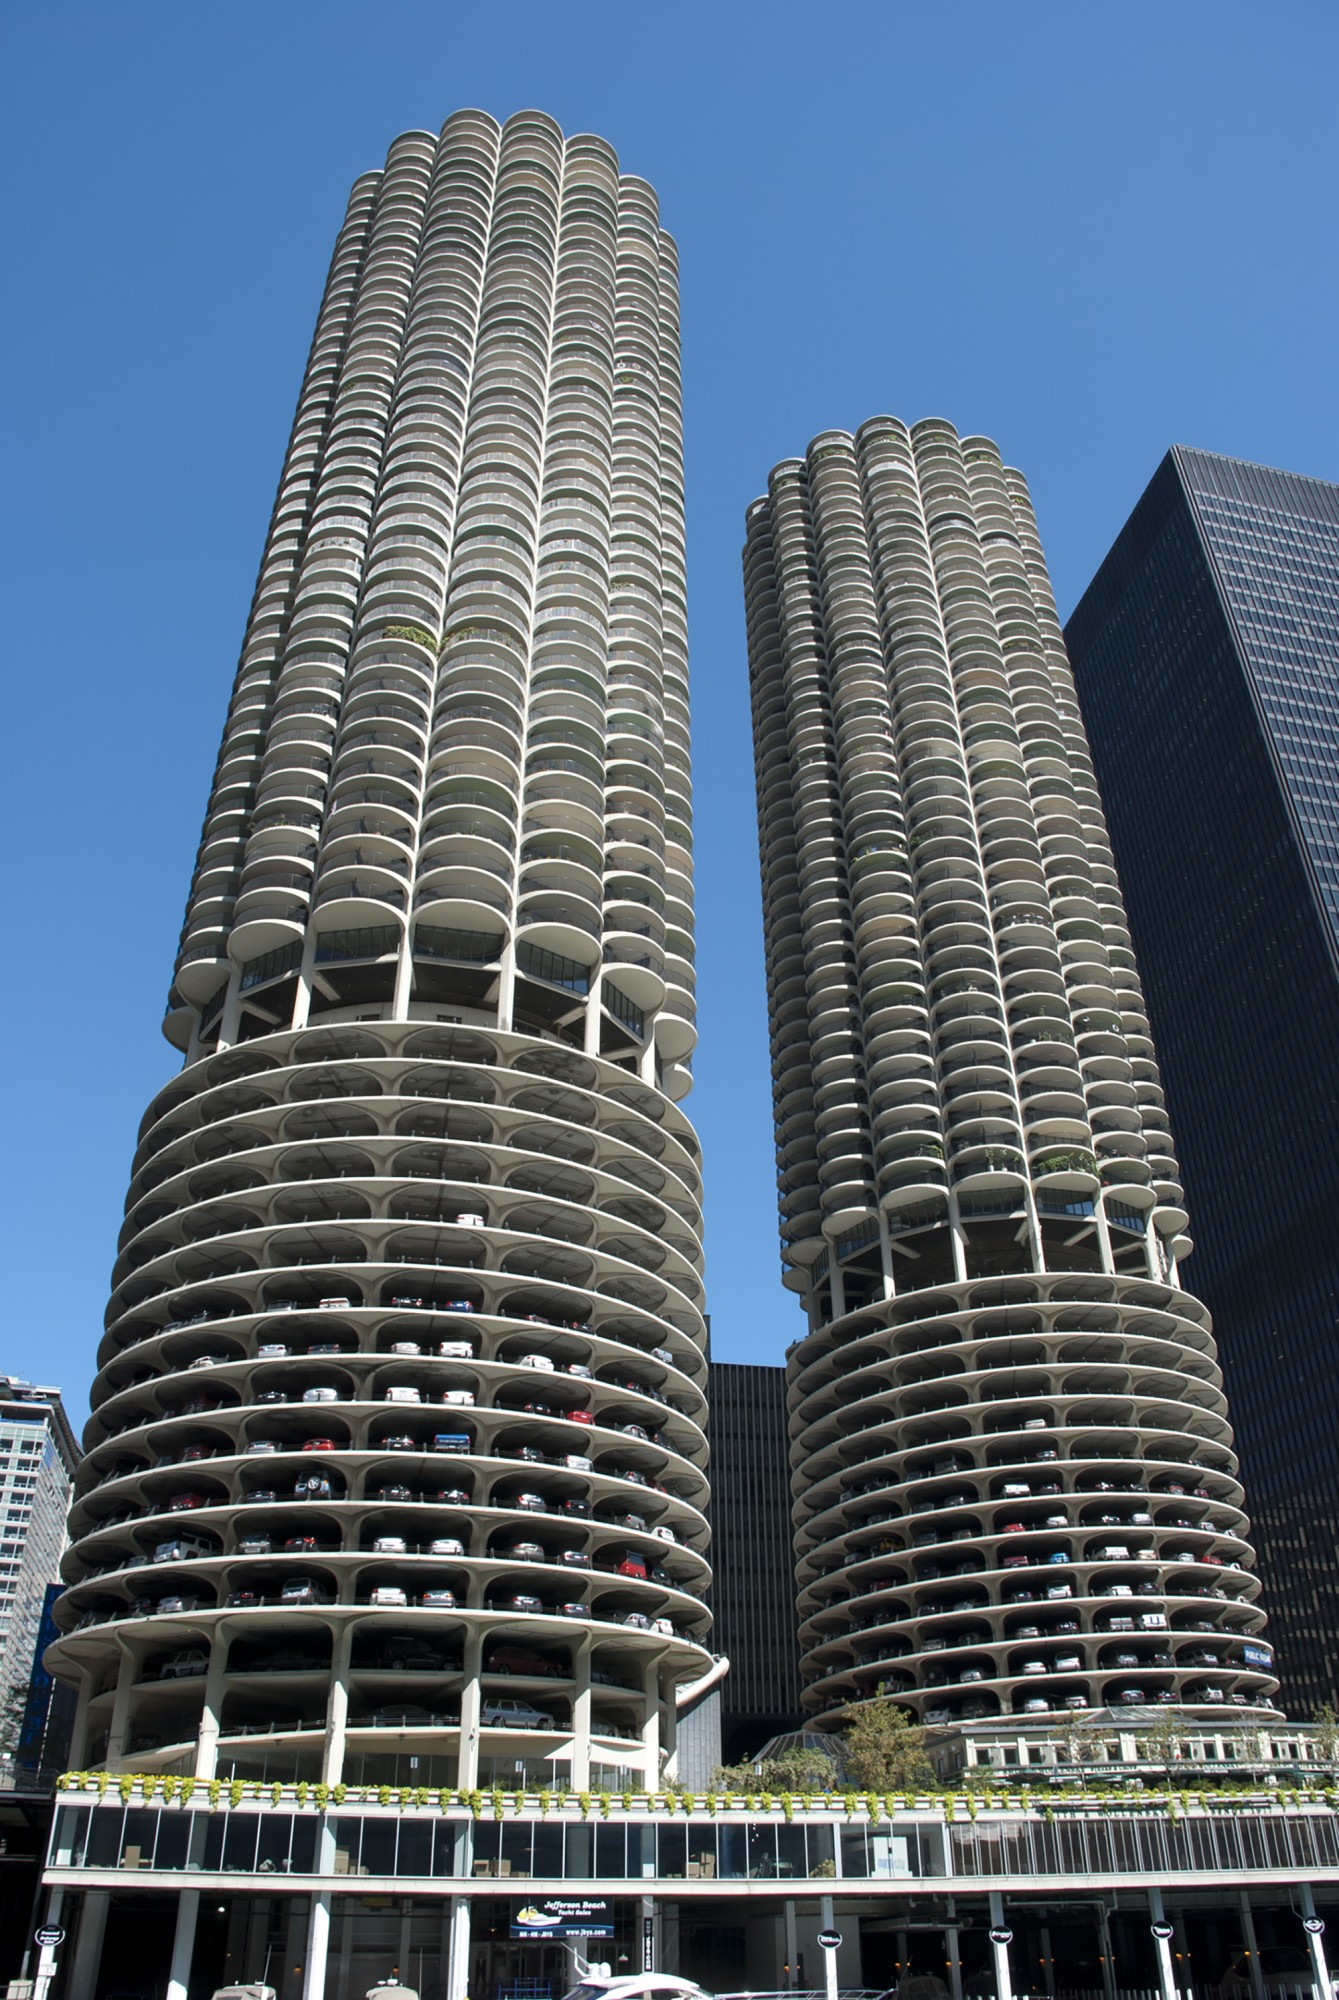 Marina city · buildings of chicago · chicago architecture center cac